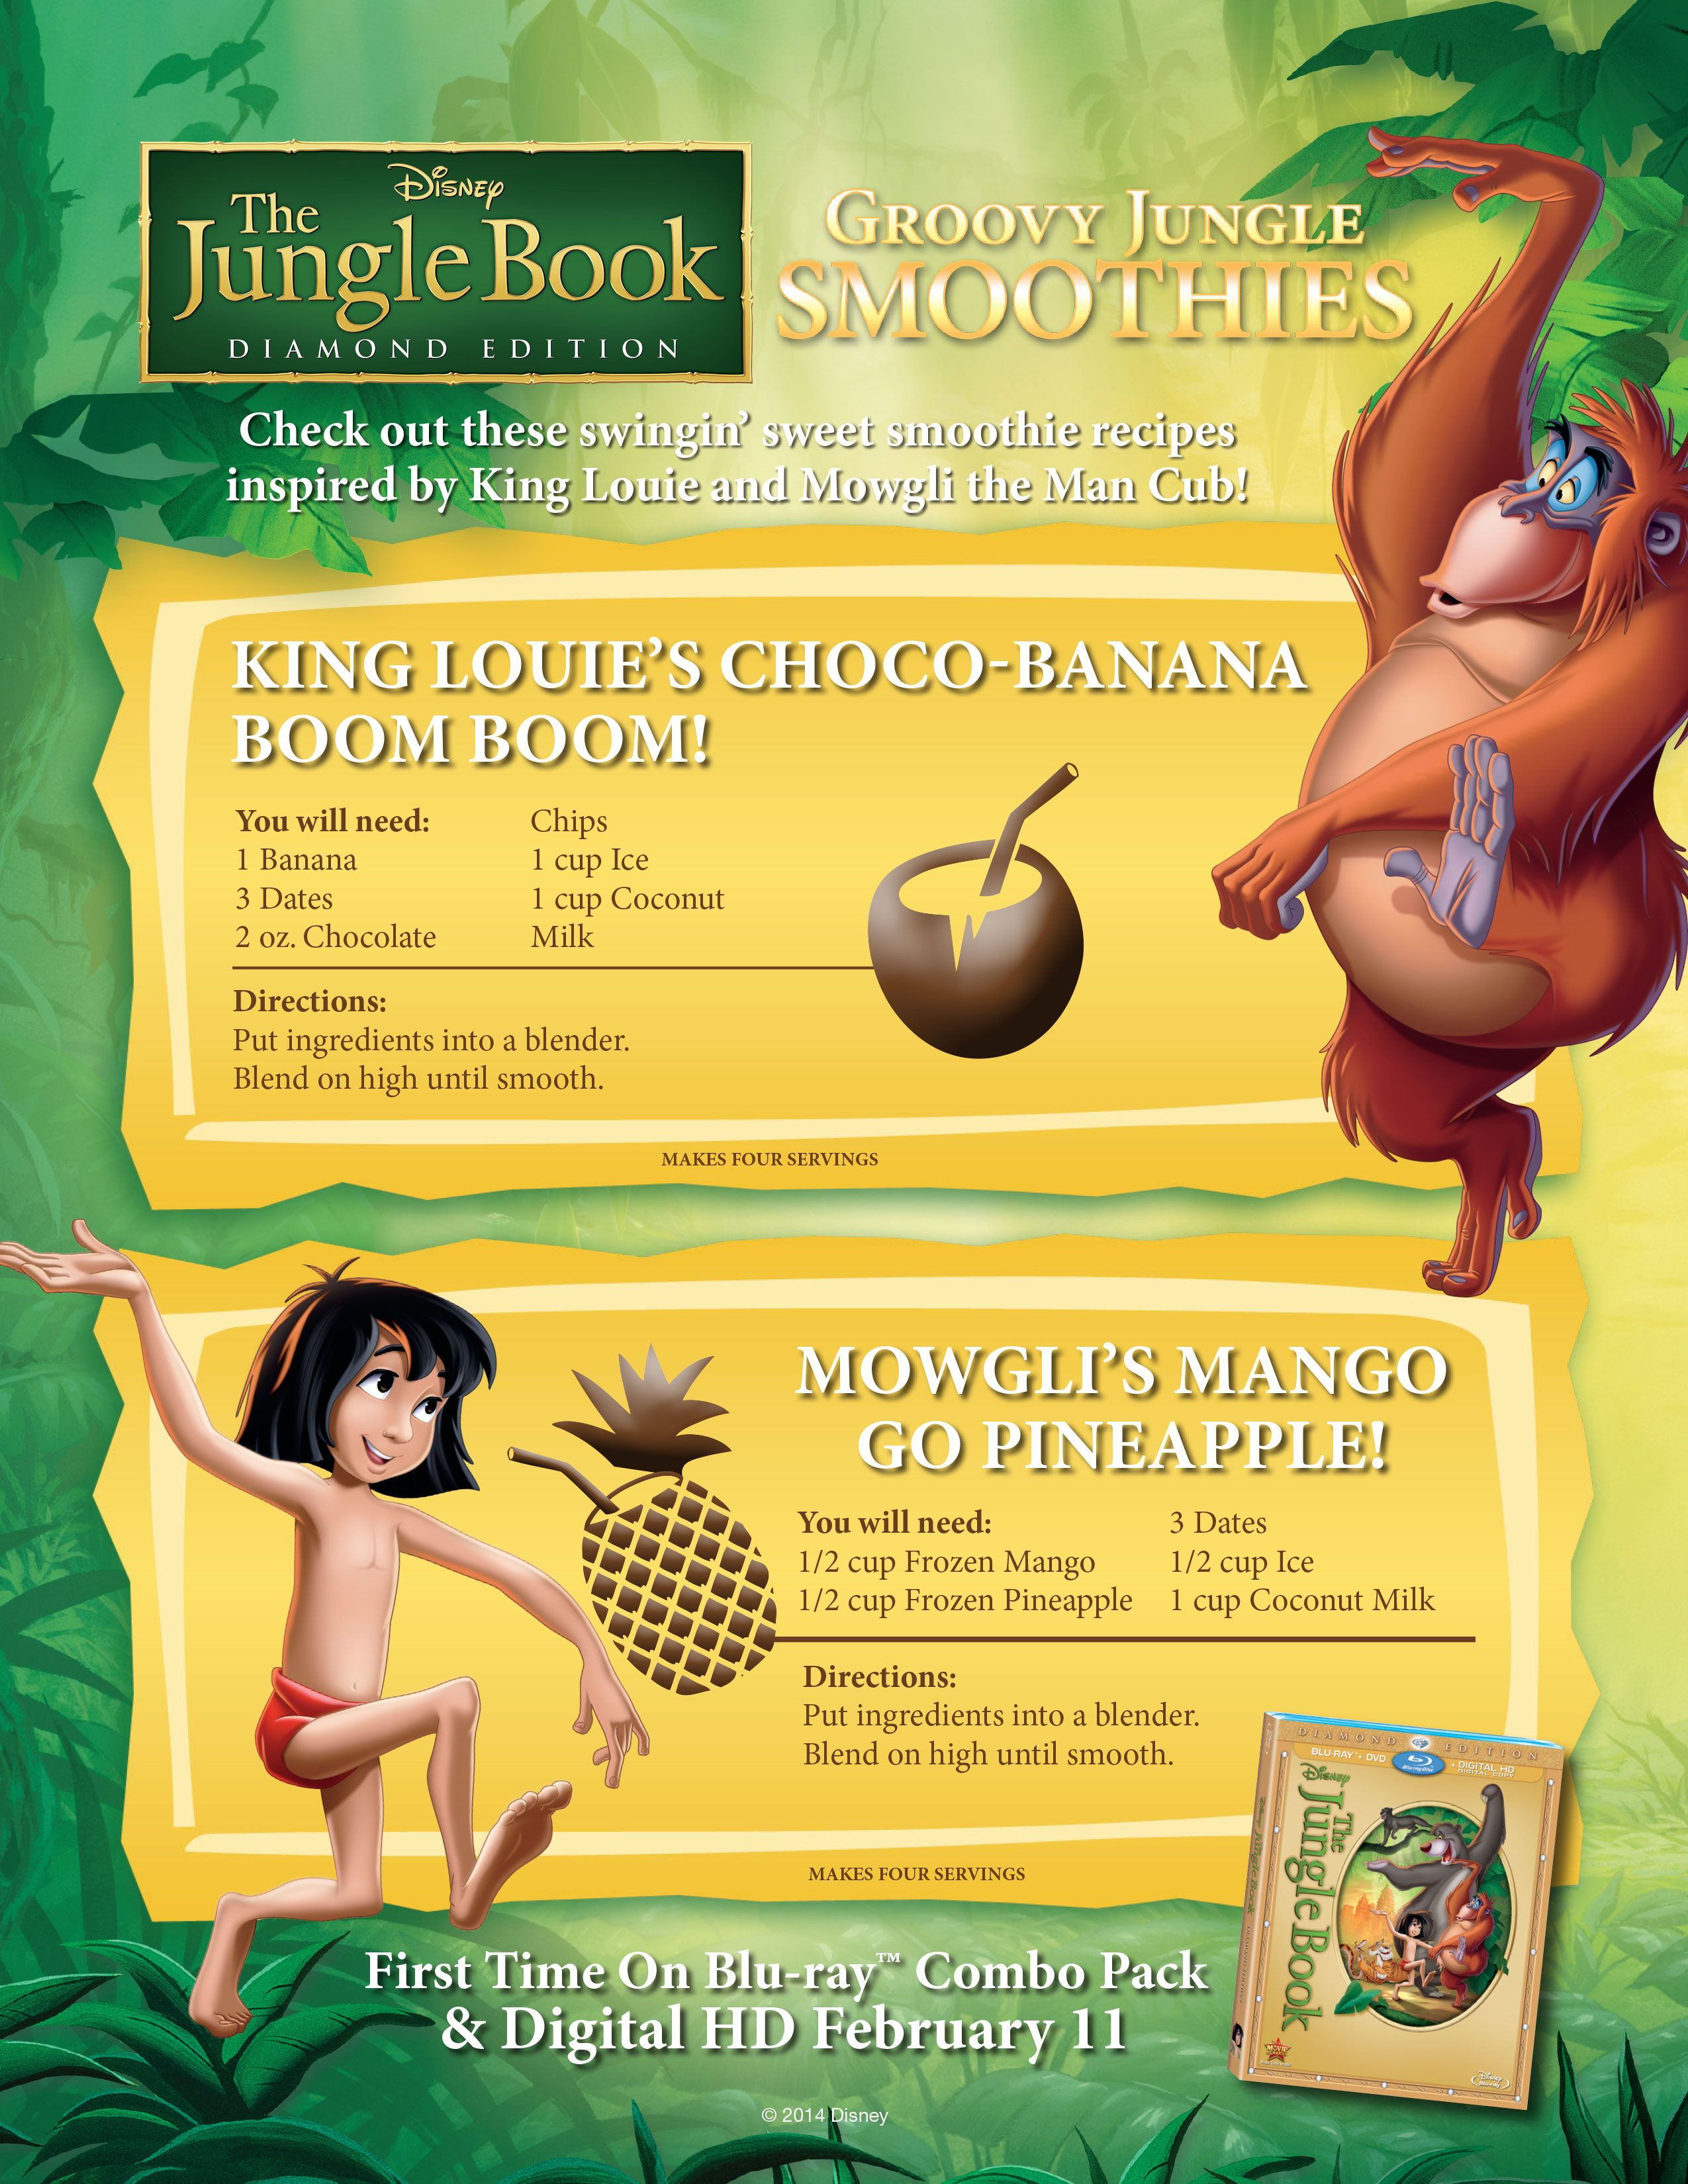 9f6e4b6a336 Get ready for #TheJungleBook Diamond Edition with these delicious smoothie  recipes!